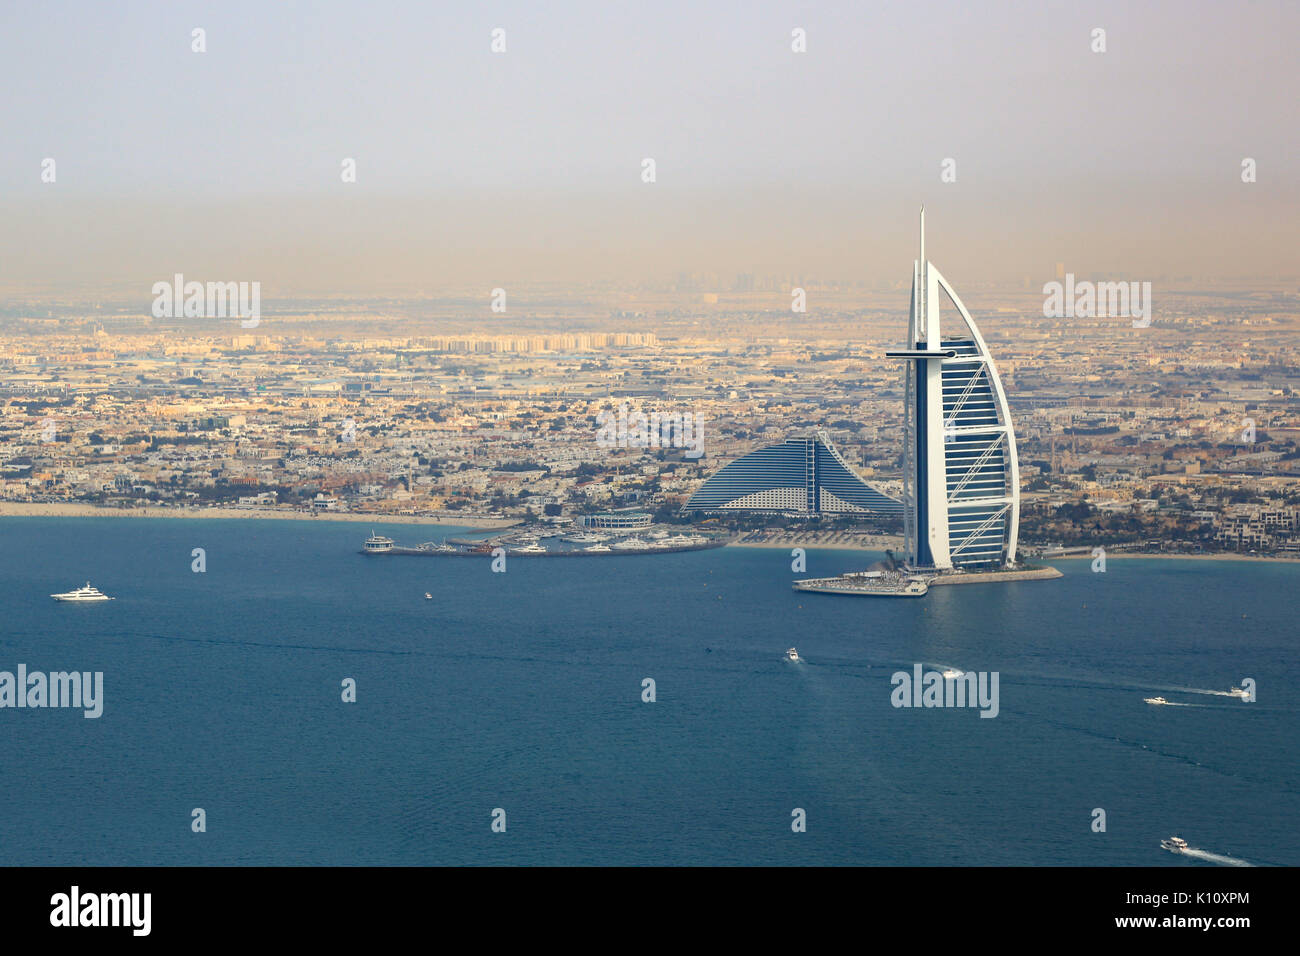 Burj Al Arab Hotel Dubai beach sea aerial view photography UAE - Stock Image